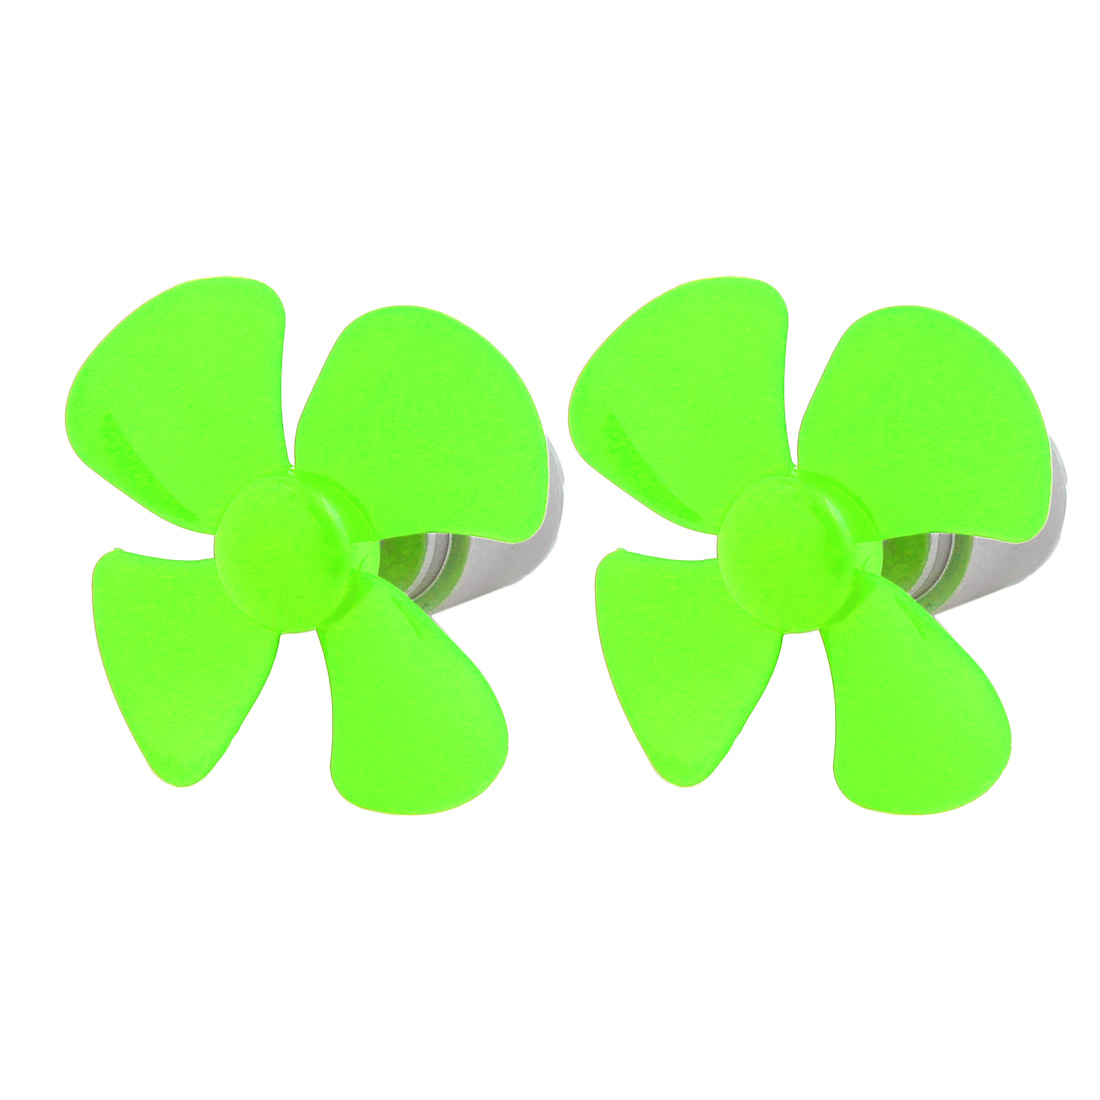 2pcs DC 3V 0.13A 21500RPM Green Strong Force Motor 4 Vanes 56mm Dia Propeller for RC Aircraft